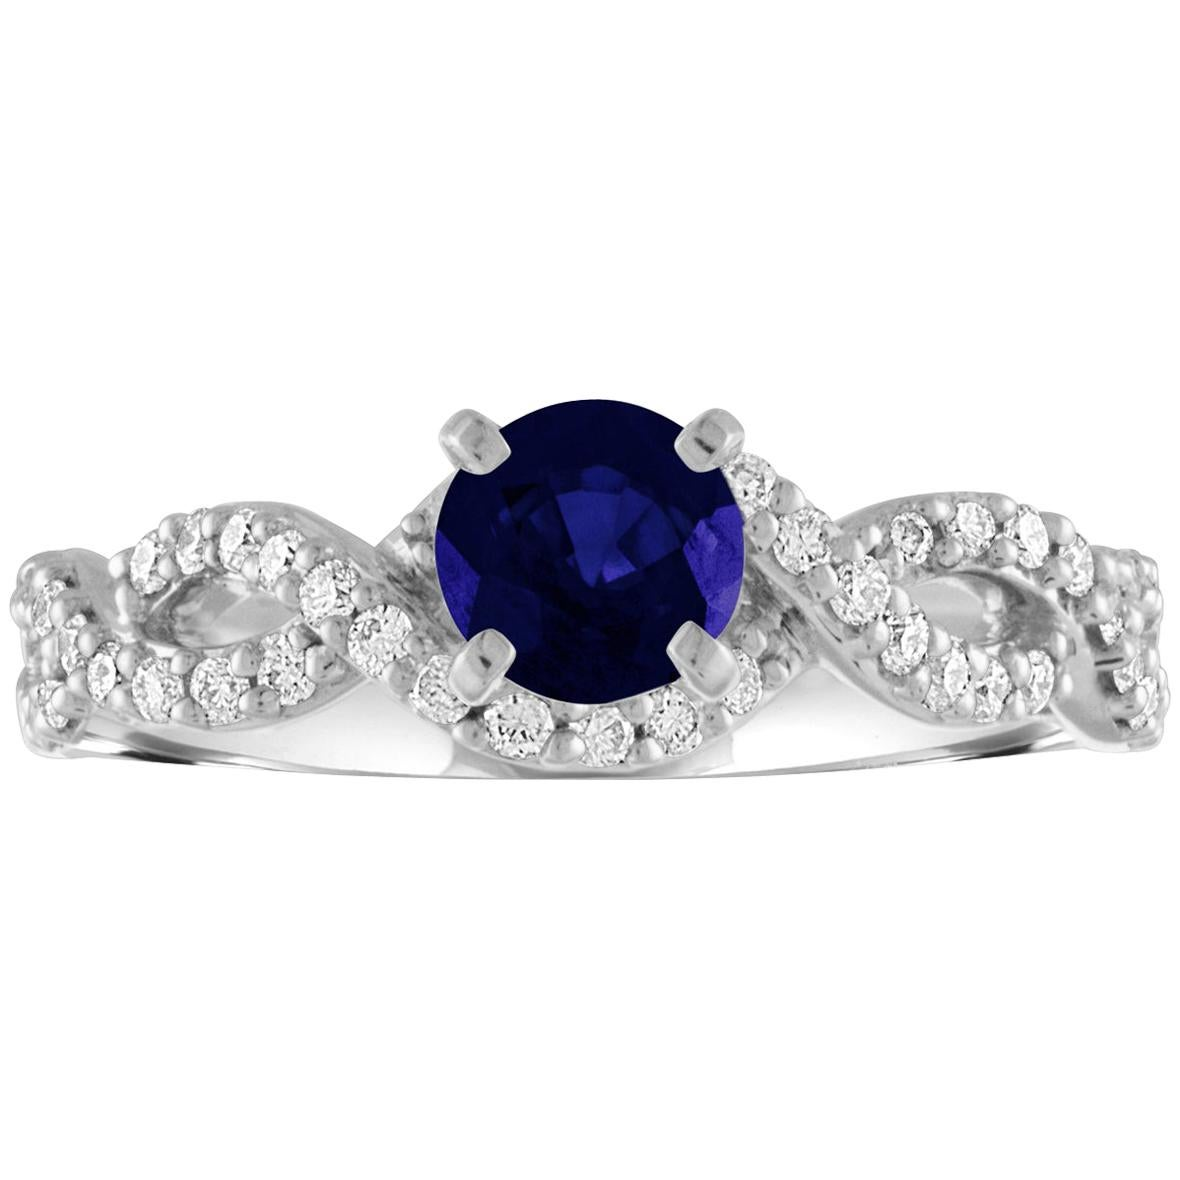 AGL Certified 0.88 Carat Round Sapphire Diamond Gold Ring